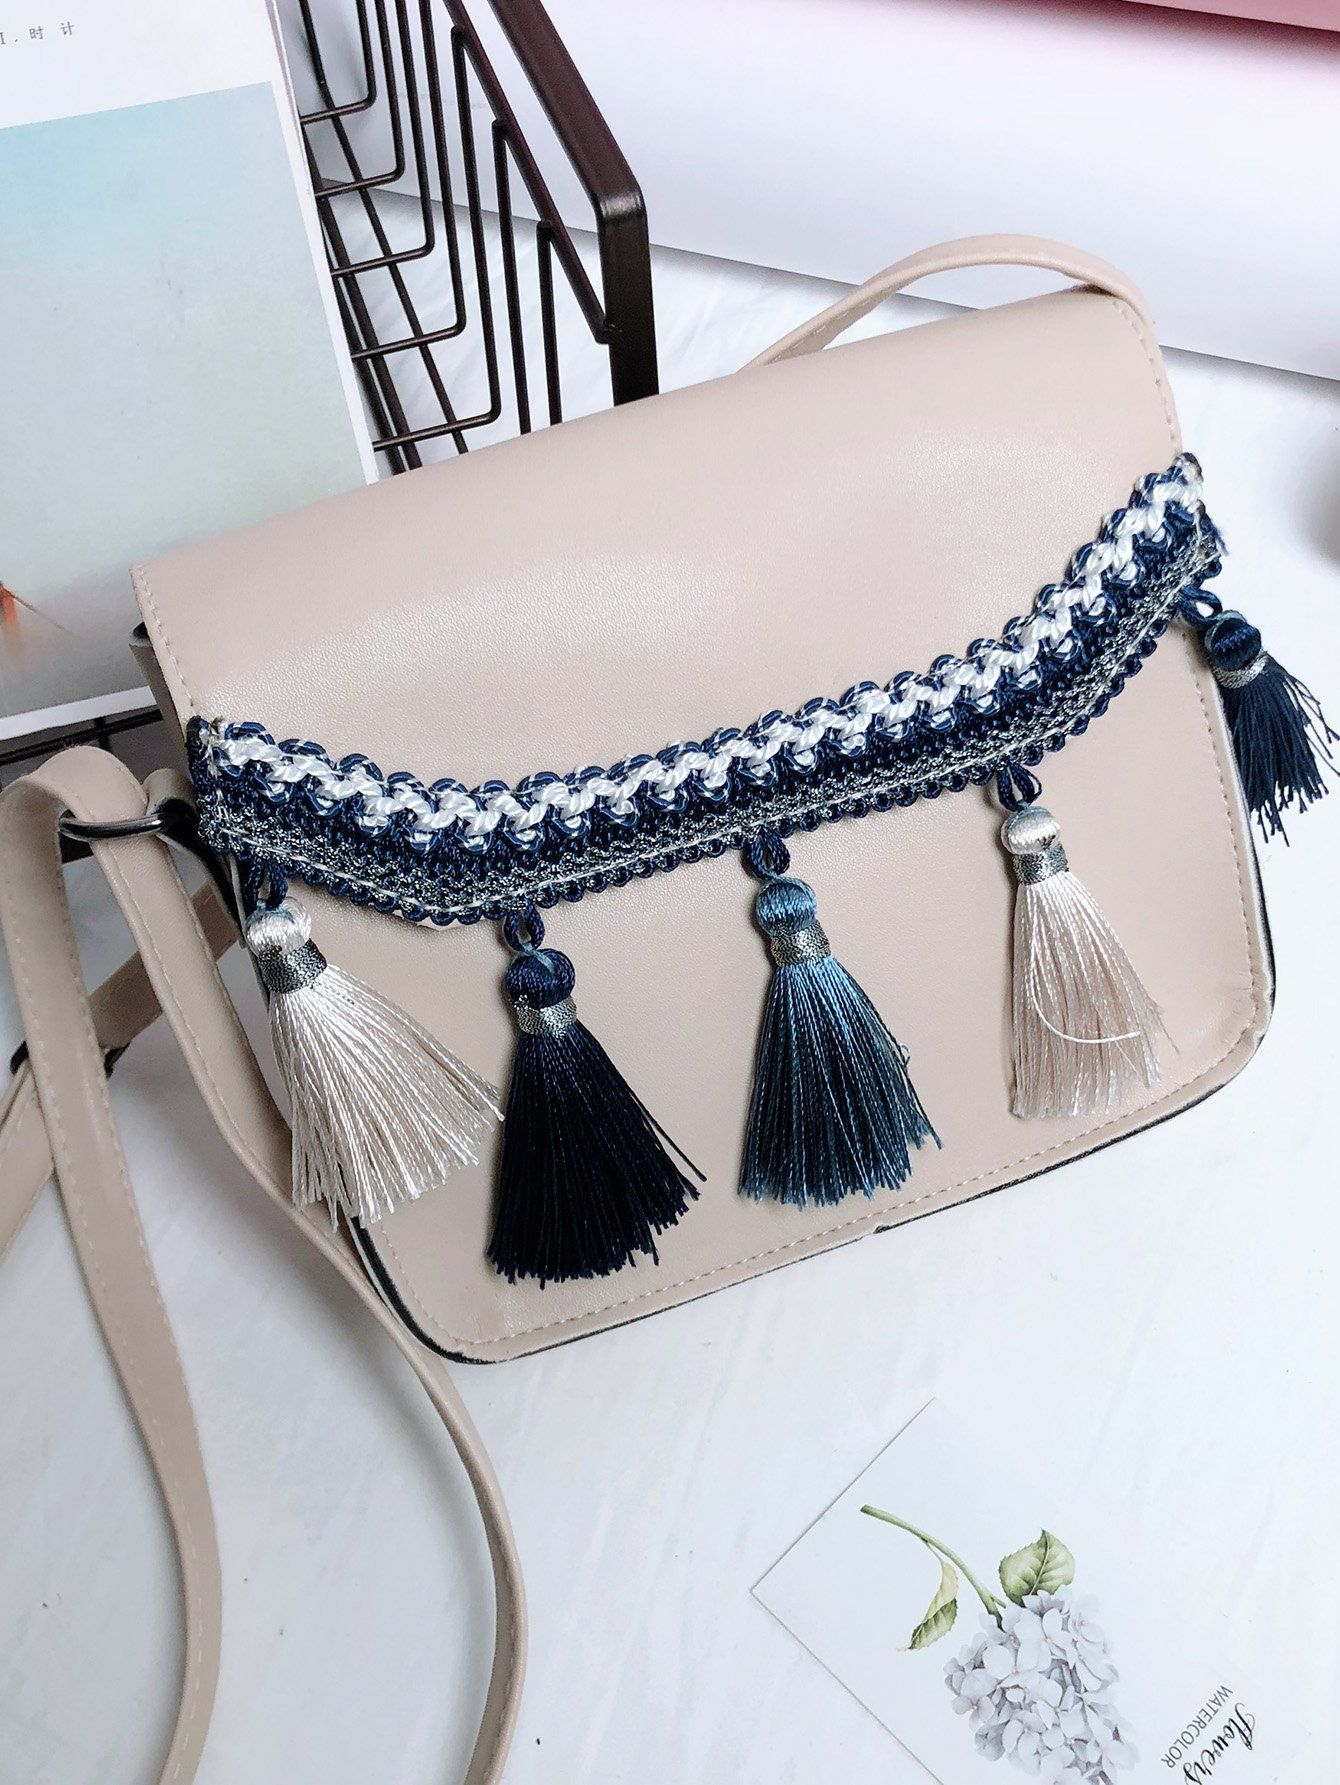 2 romwe crossbody bag  with desi outfits